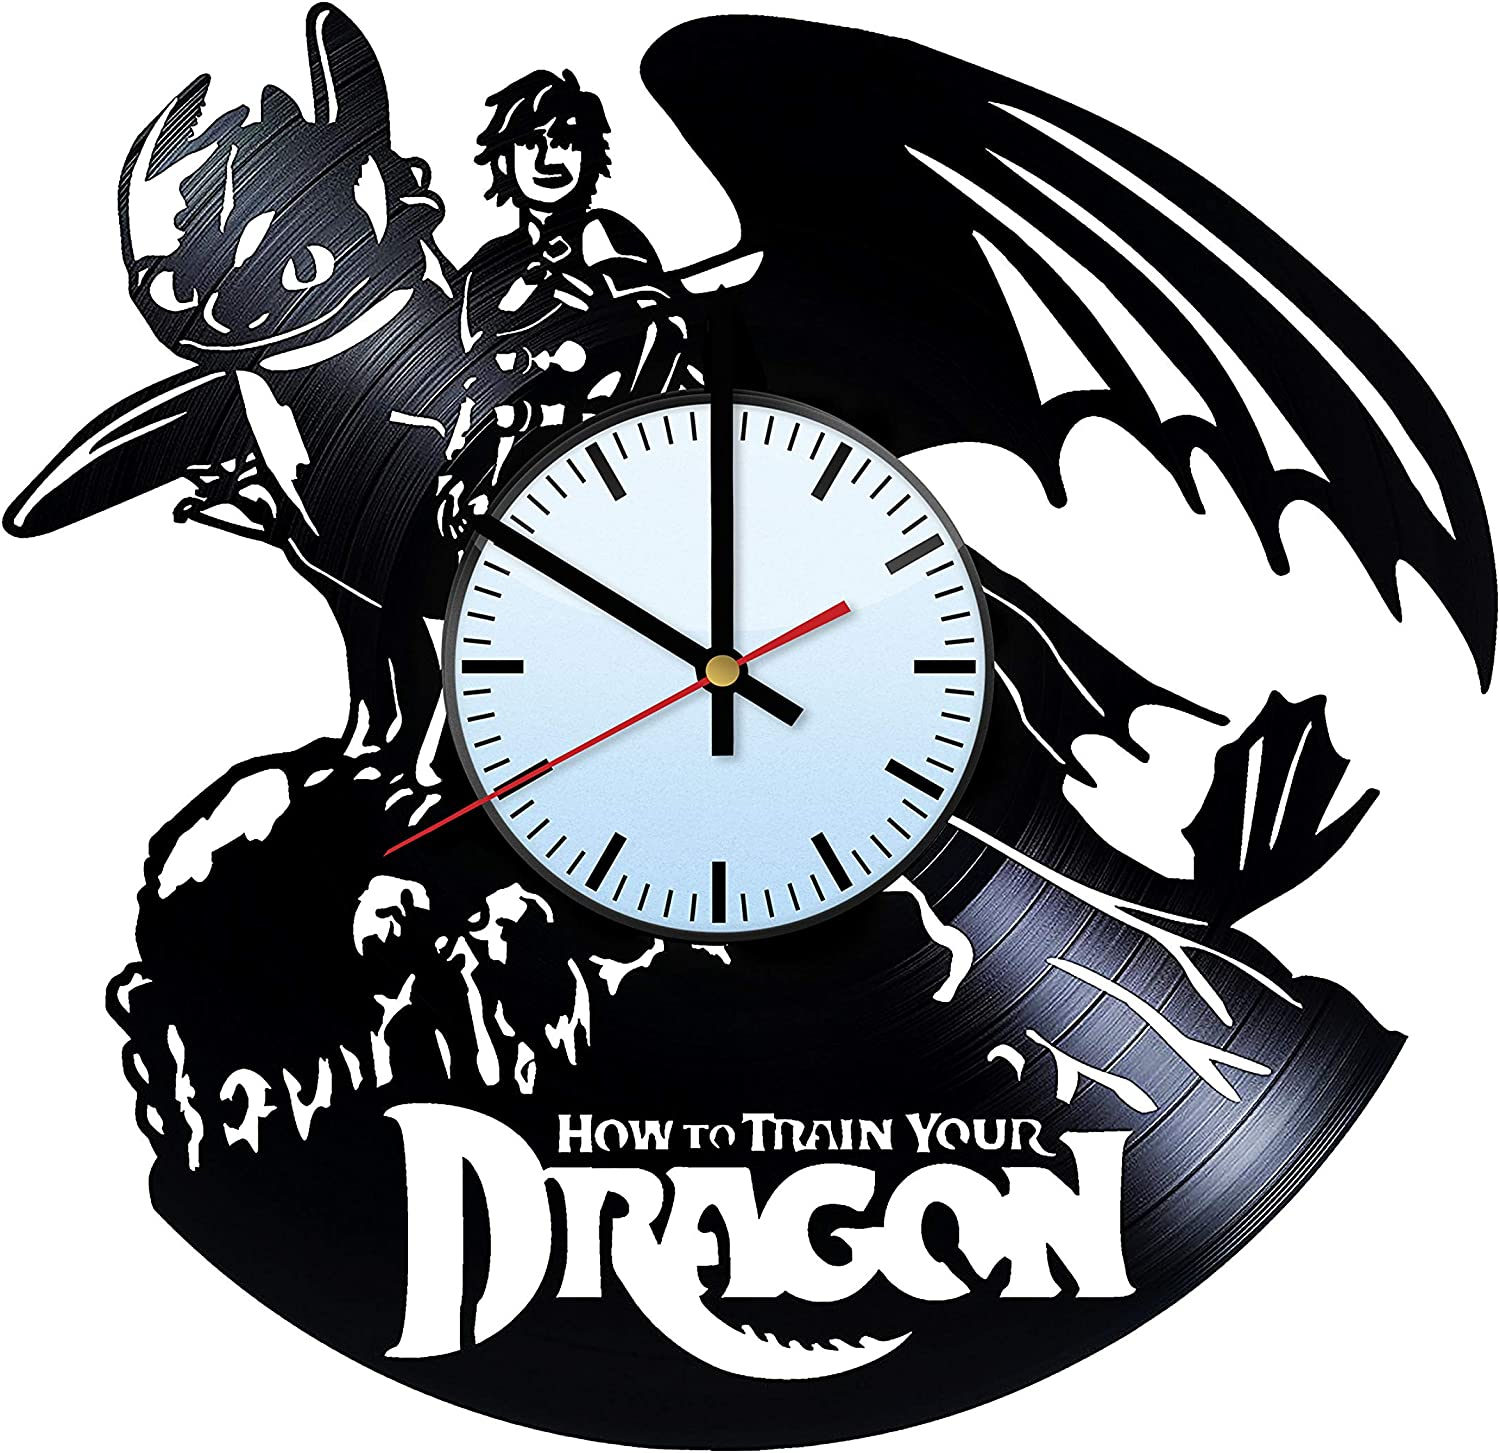 How to Train Your Dragon Handmade Vinyl Record Wall Clock - Unique Bedroom and Living Room Decor Great Gift Idea